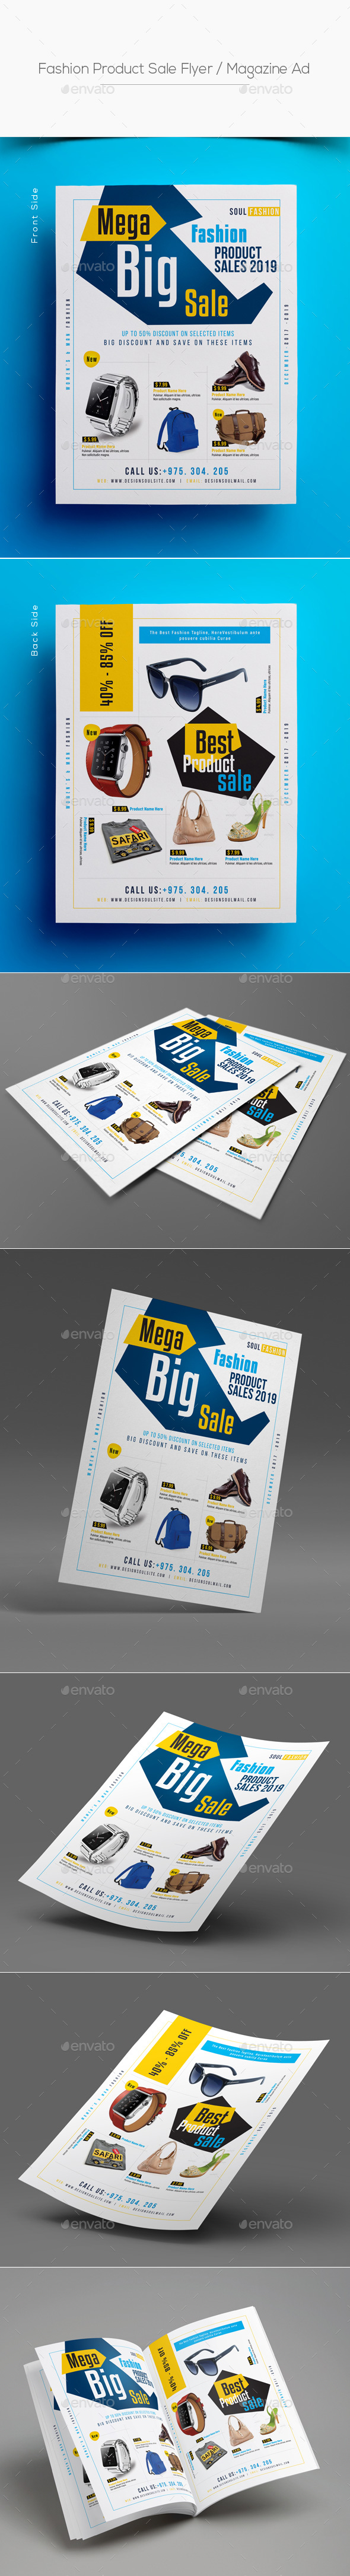 Fashion Product Sale Flyer / Magazine Ad - Corporate Flyers